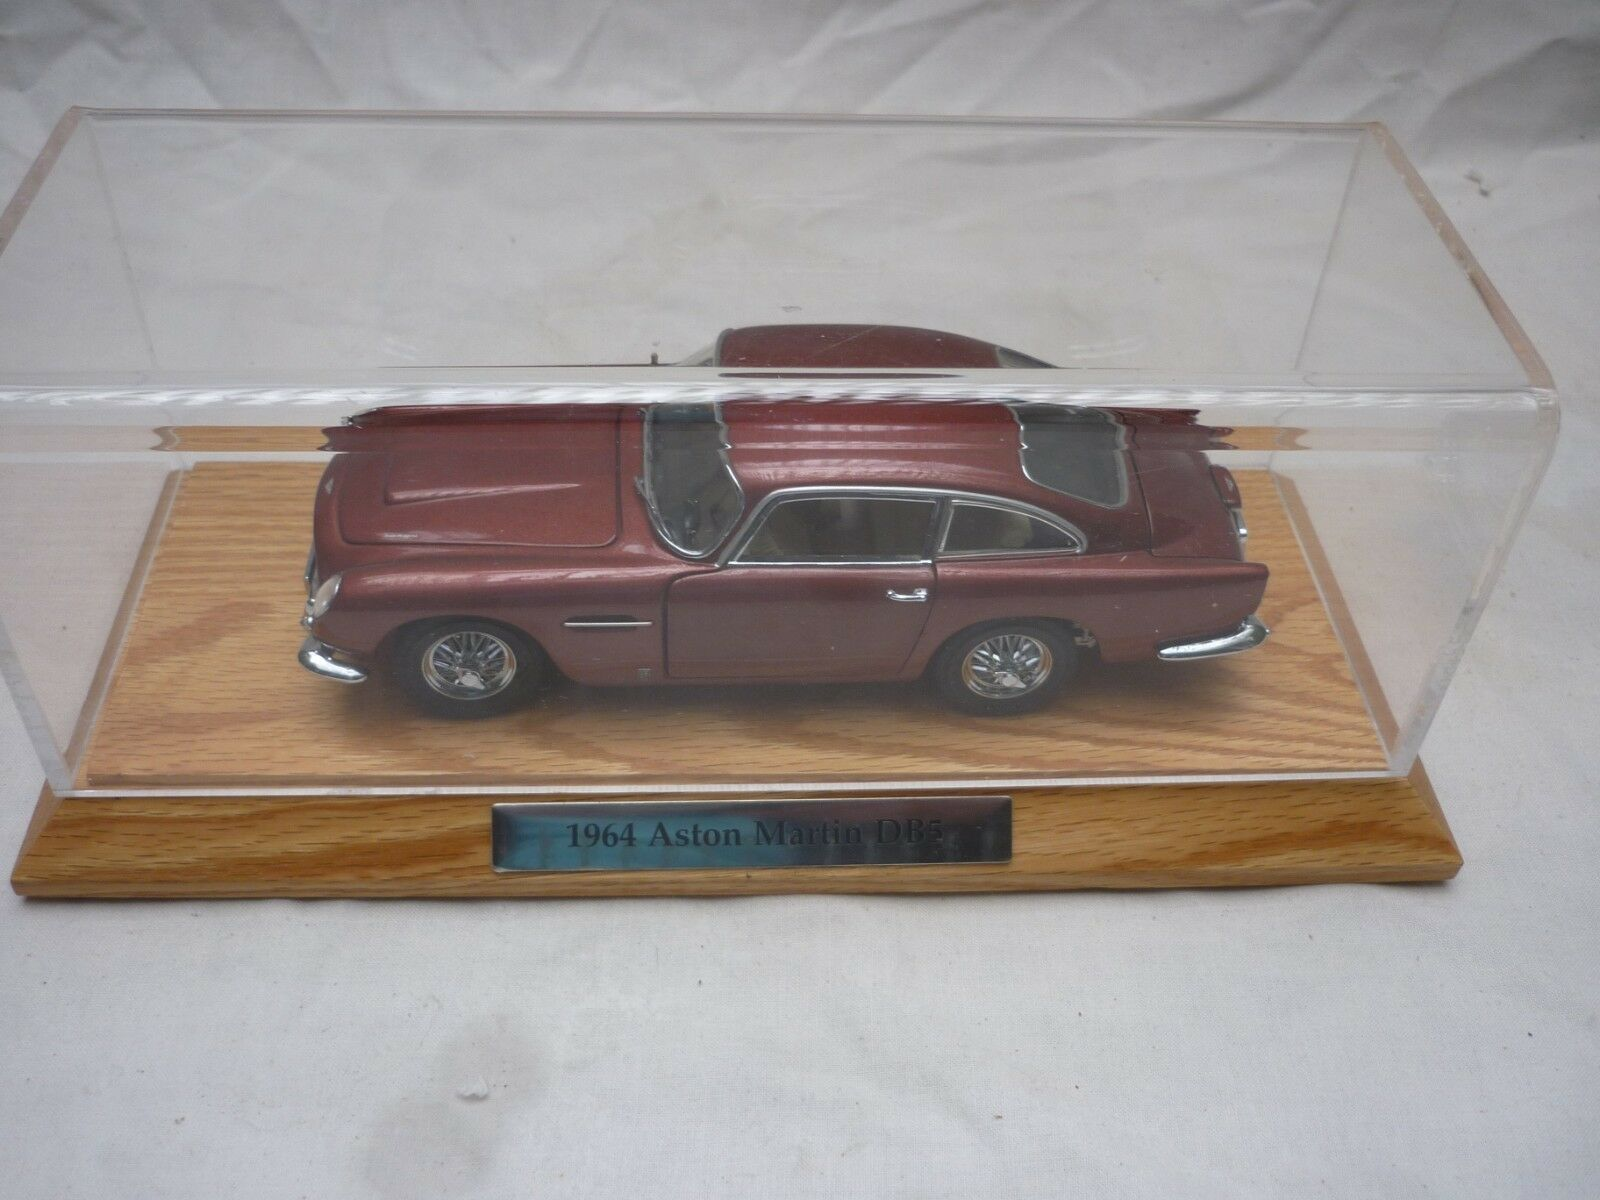 A Danbury mint model of  a 1964 Aston Martin DB5. no box  has a display case